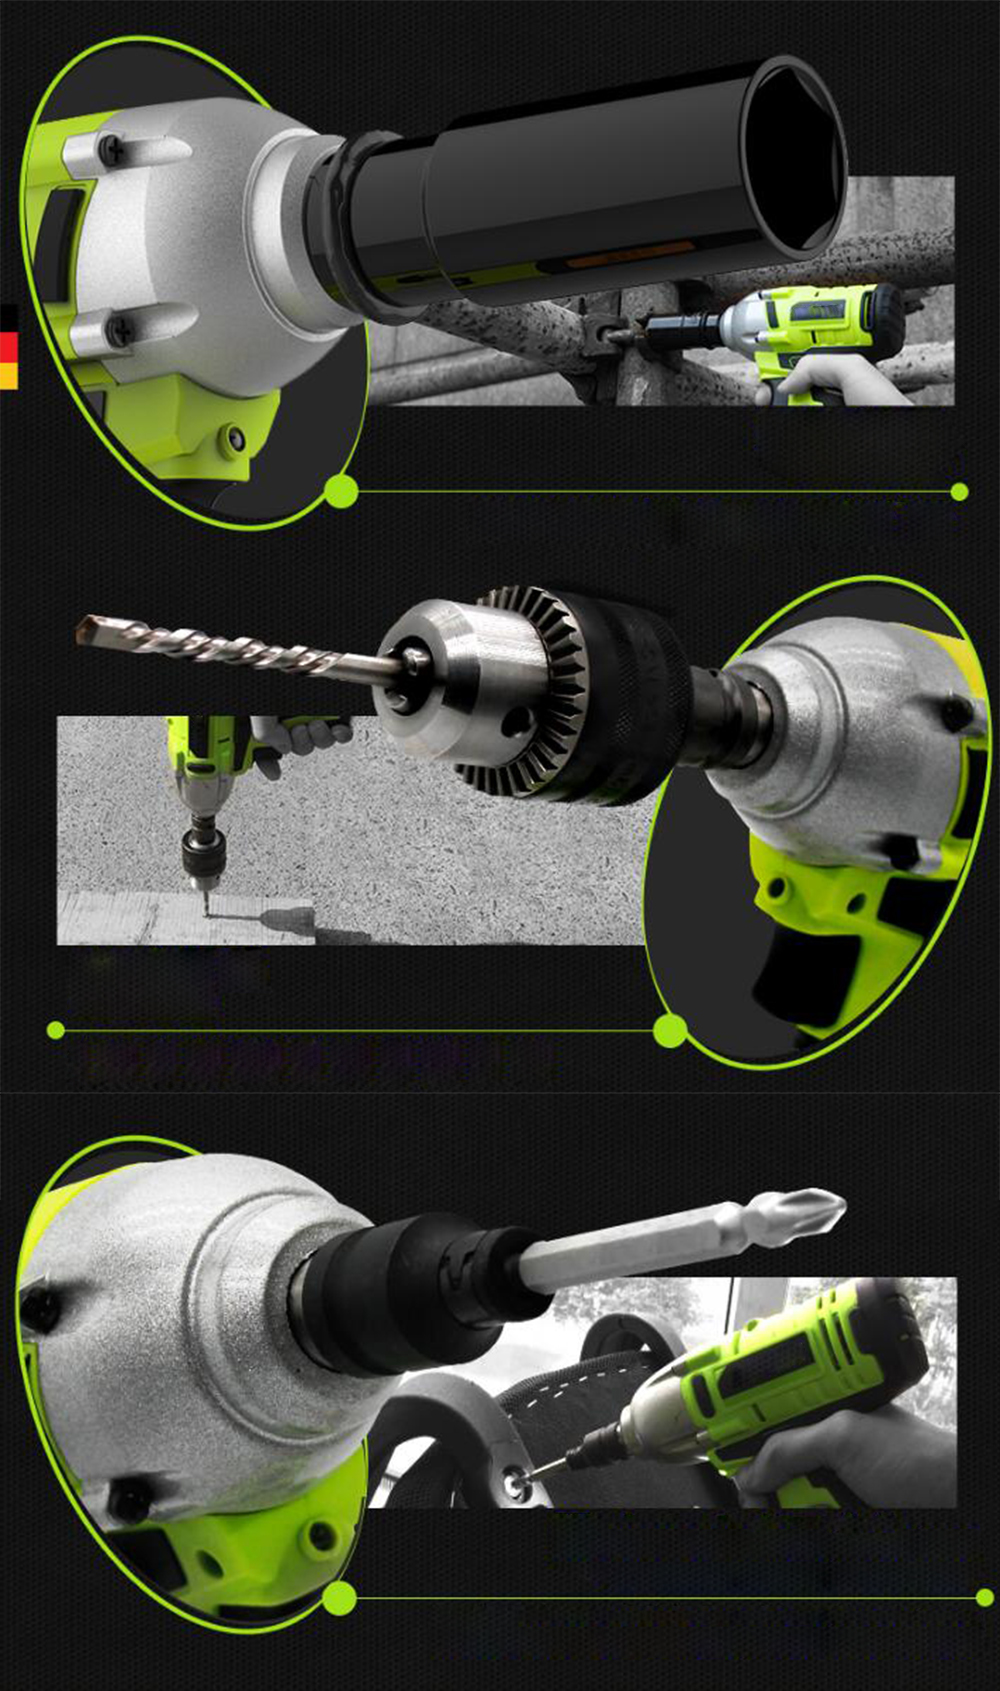 Beste Multitool Machine Petpig 168tv 19800mah New Impact Drill Brushless Electric Wrench Lithium Battery Charging Wrench Impact Car Scaffolding Sleeve